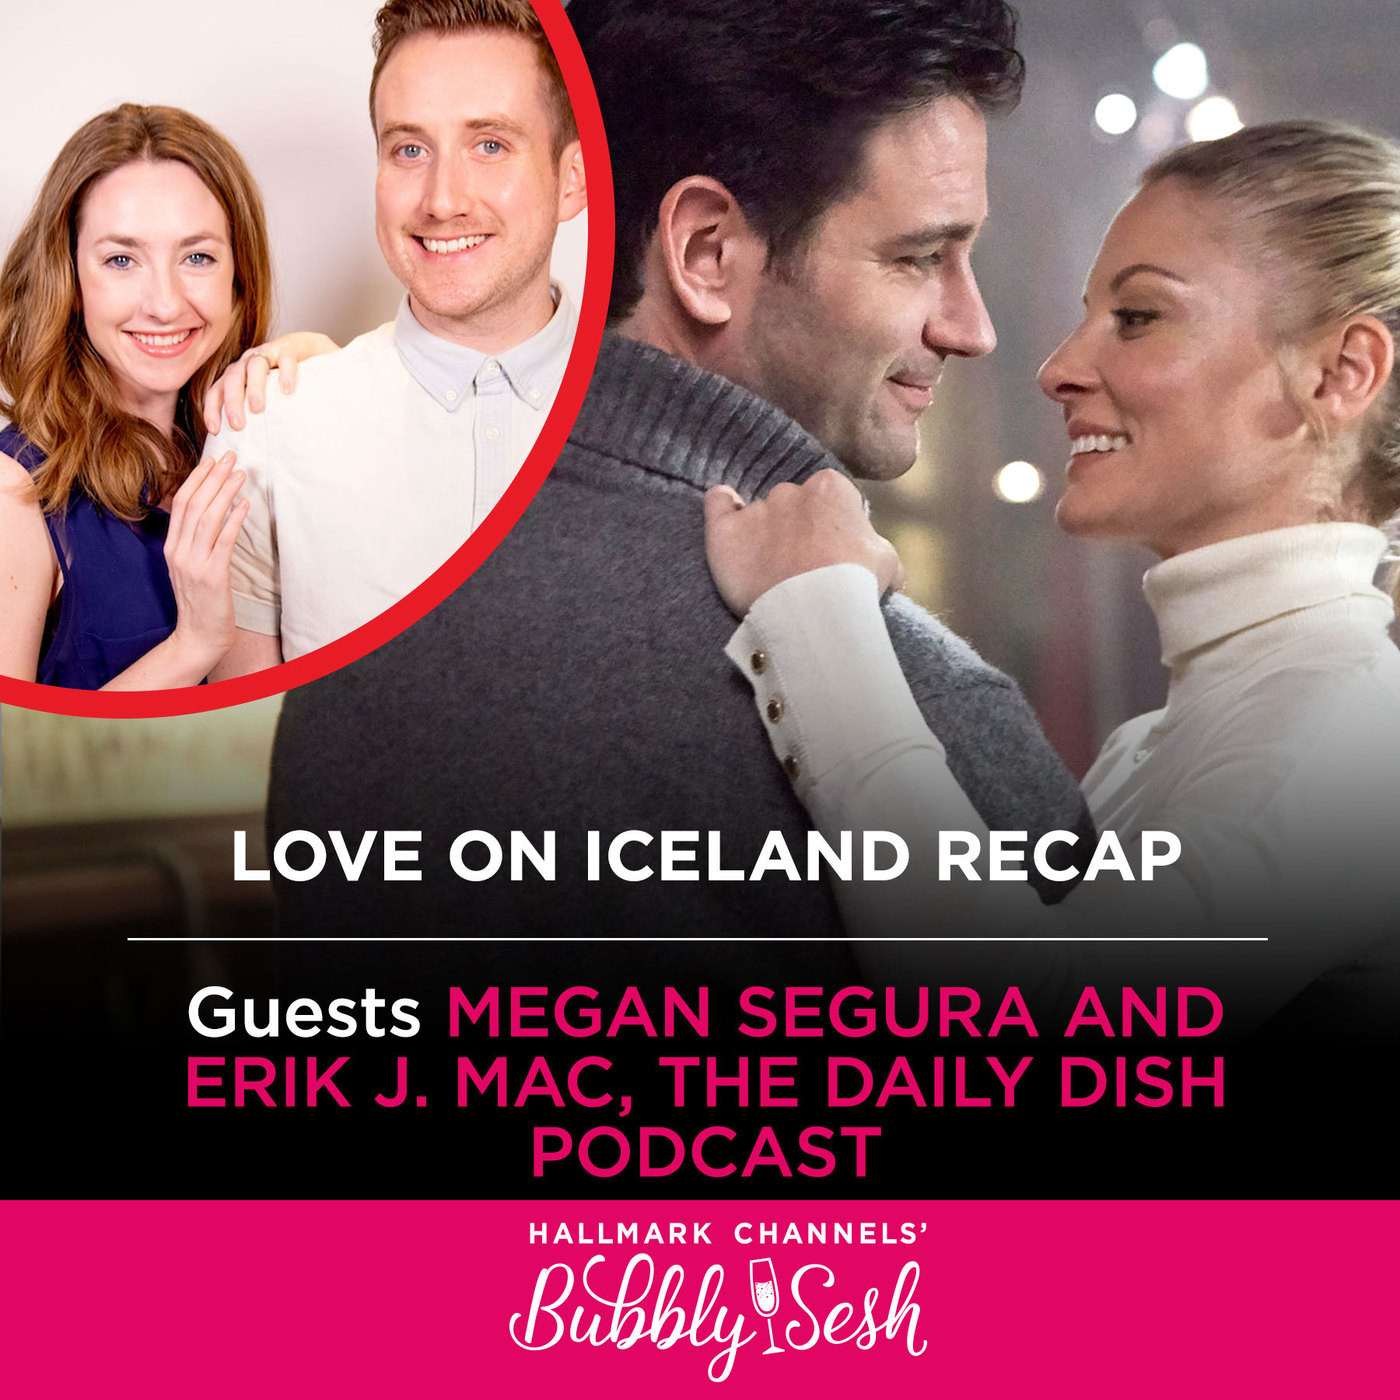 Love on Iceland Recap with Megan Segura and Erik J. Mac, Bravo Daily Dish Podcast